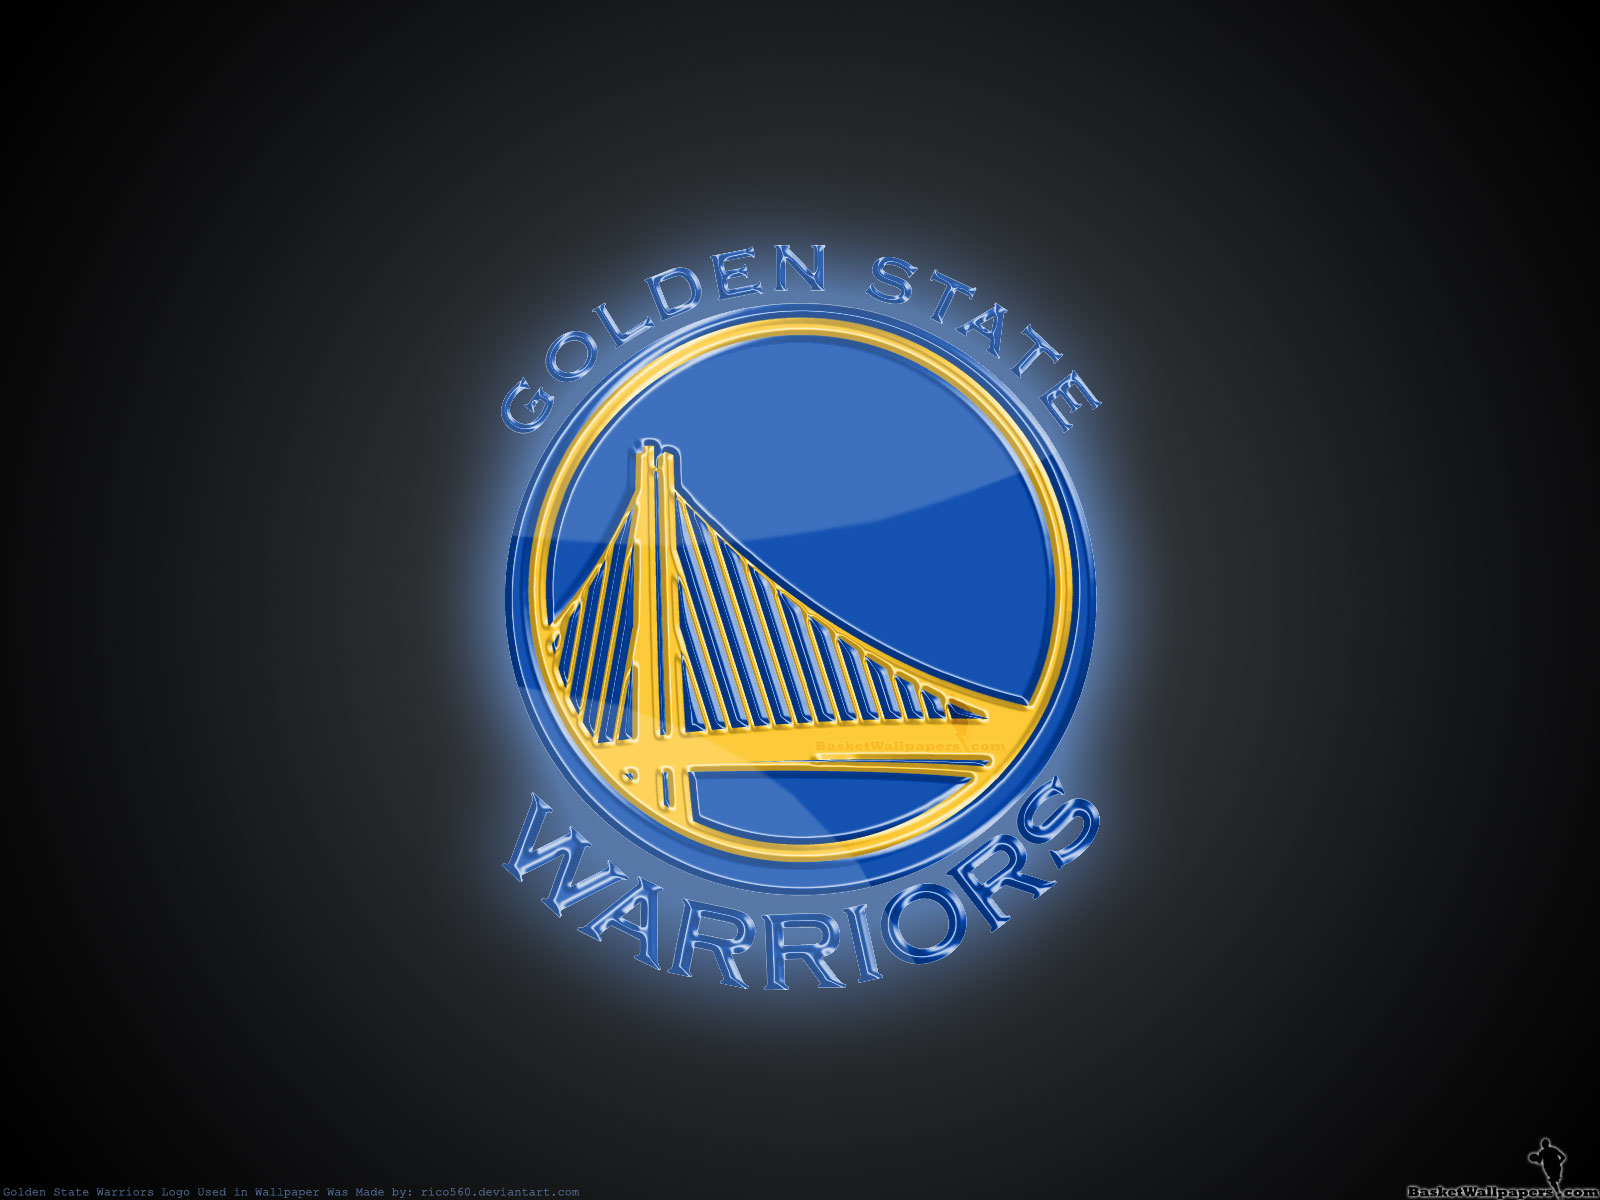 Golden State Warriors 3D Logo Wallpaper